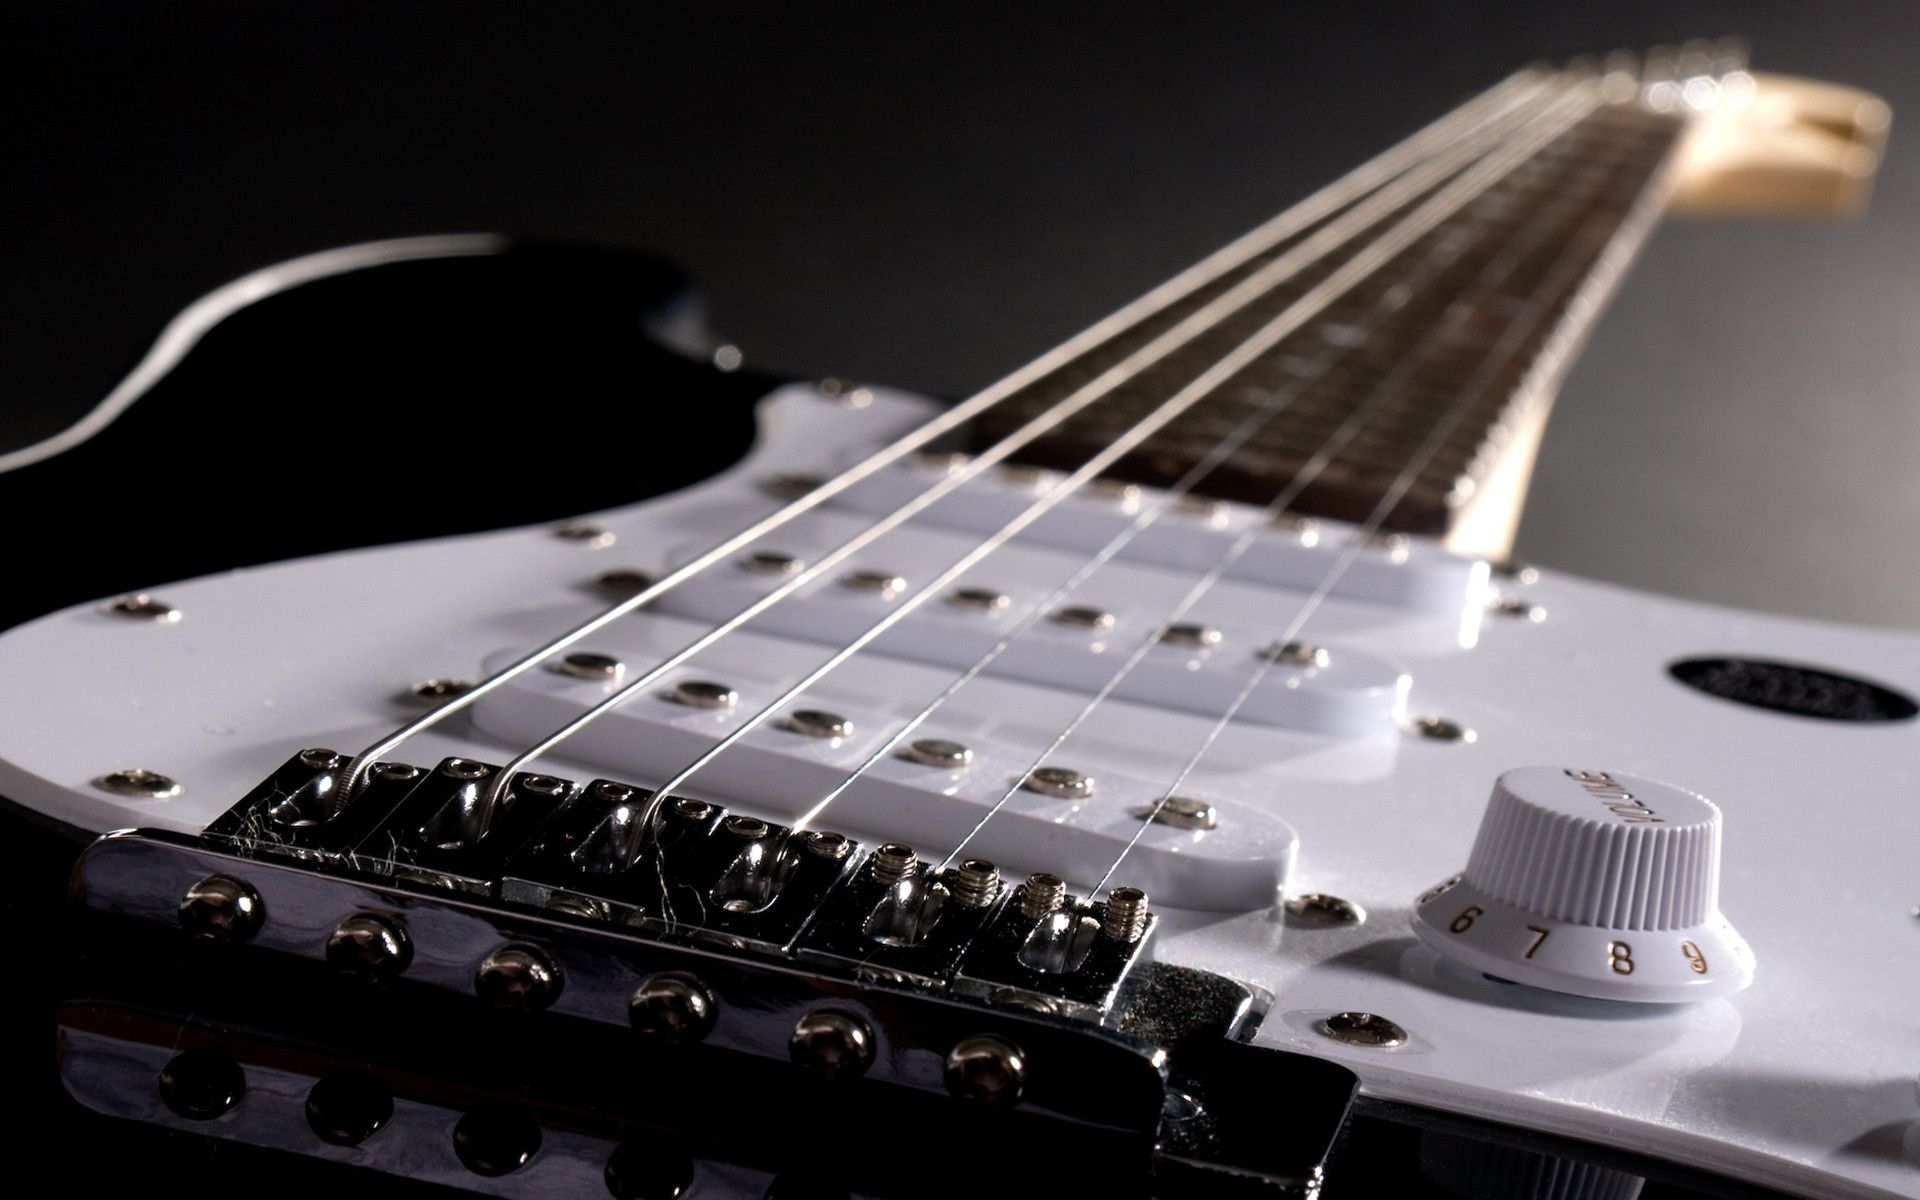 Guitar Wallpapers High Quality  Download Free 1920x1200